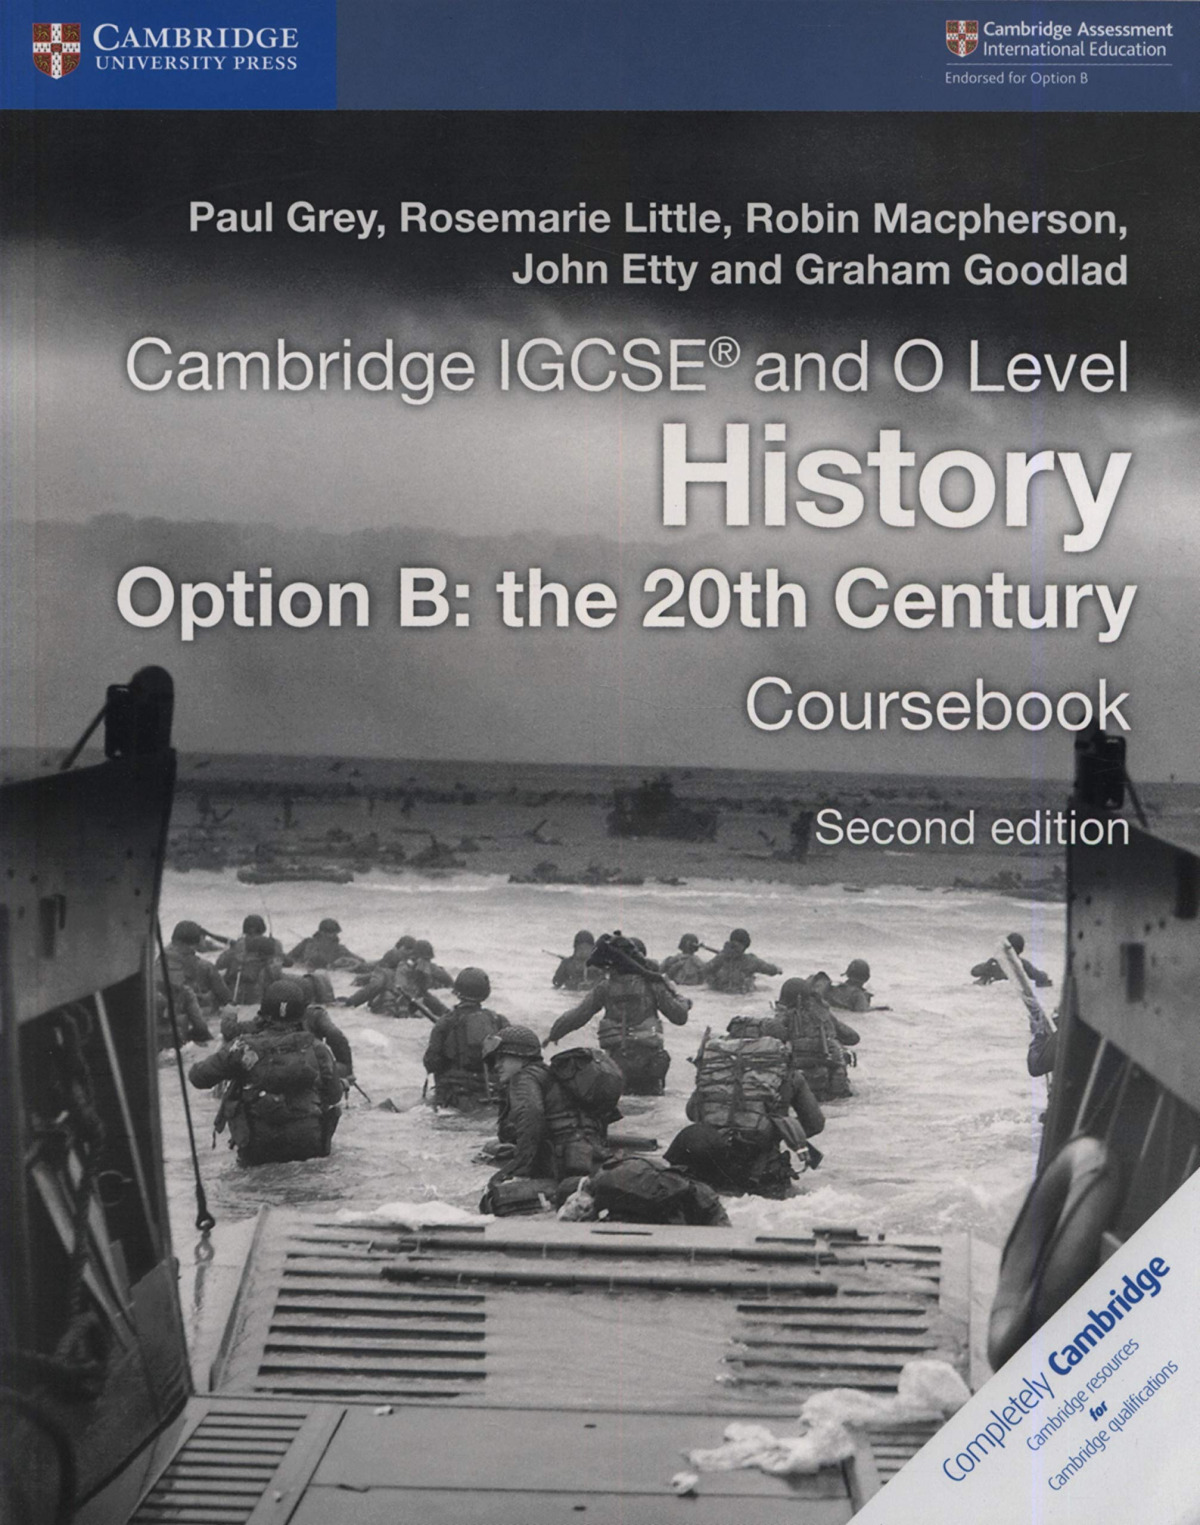 CAMBRIDGE IGCSE HISTORY COURSEBOOK